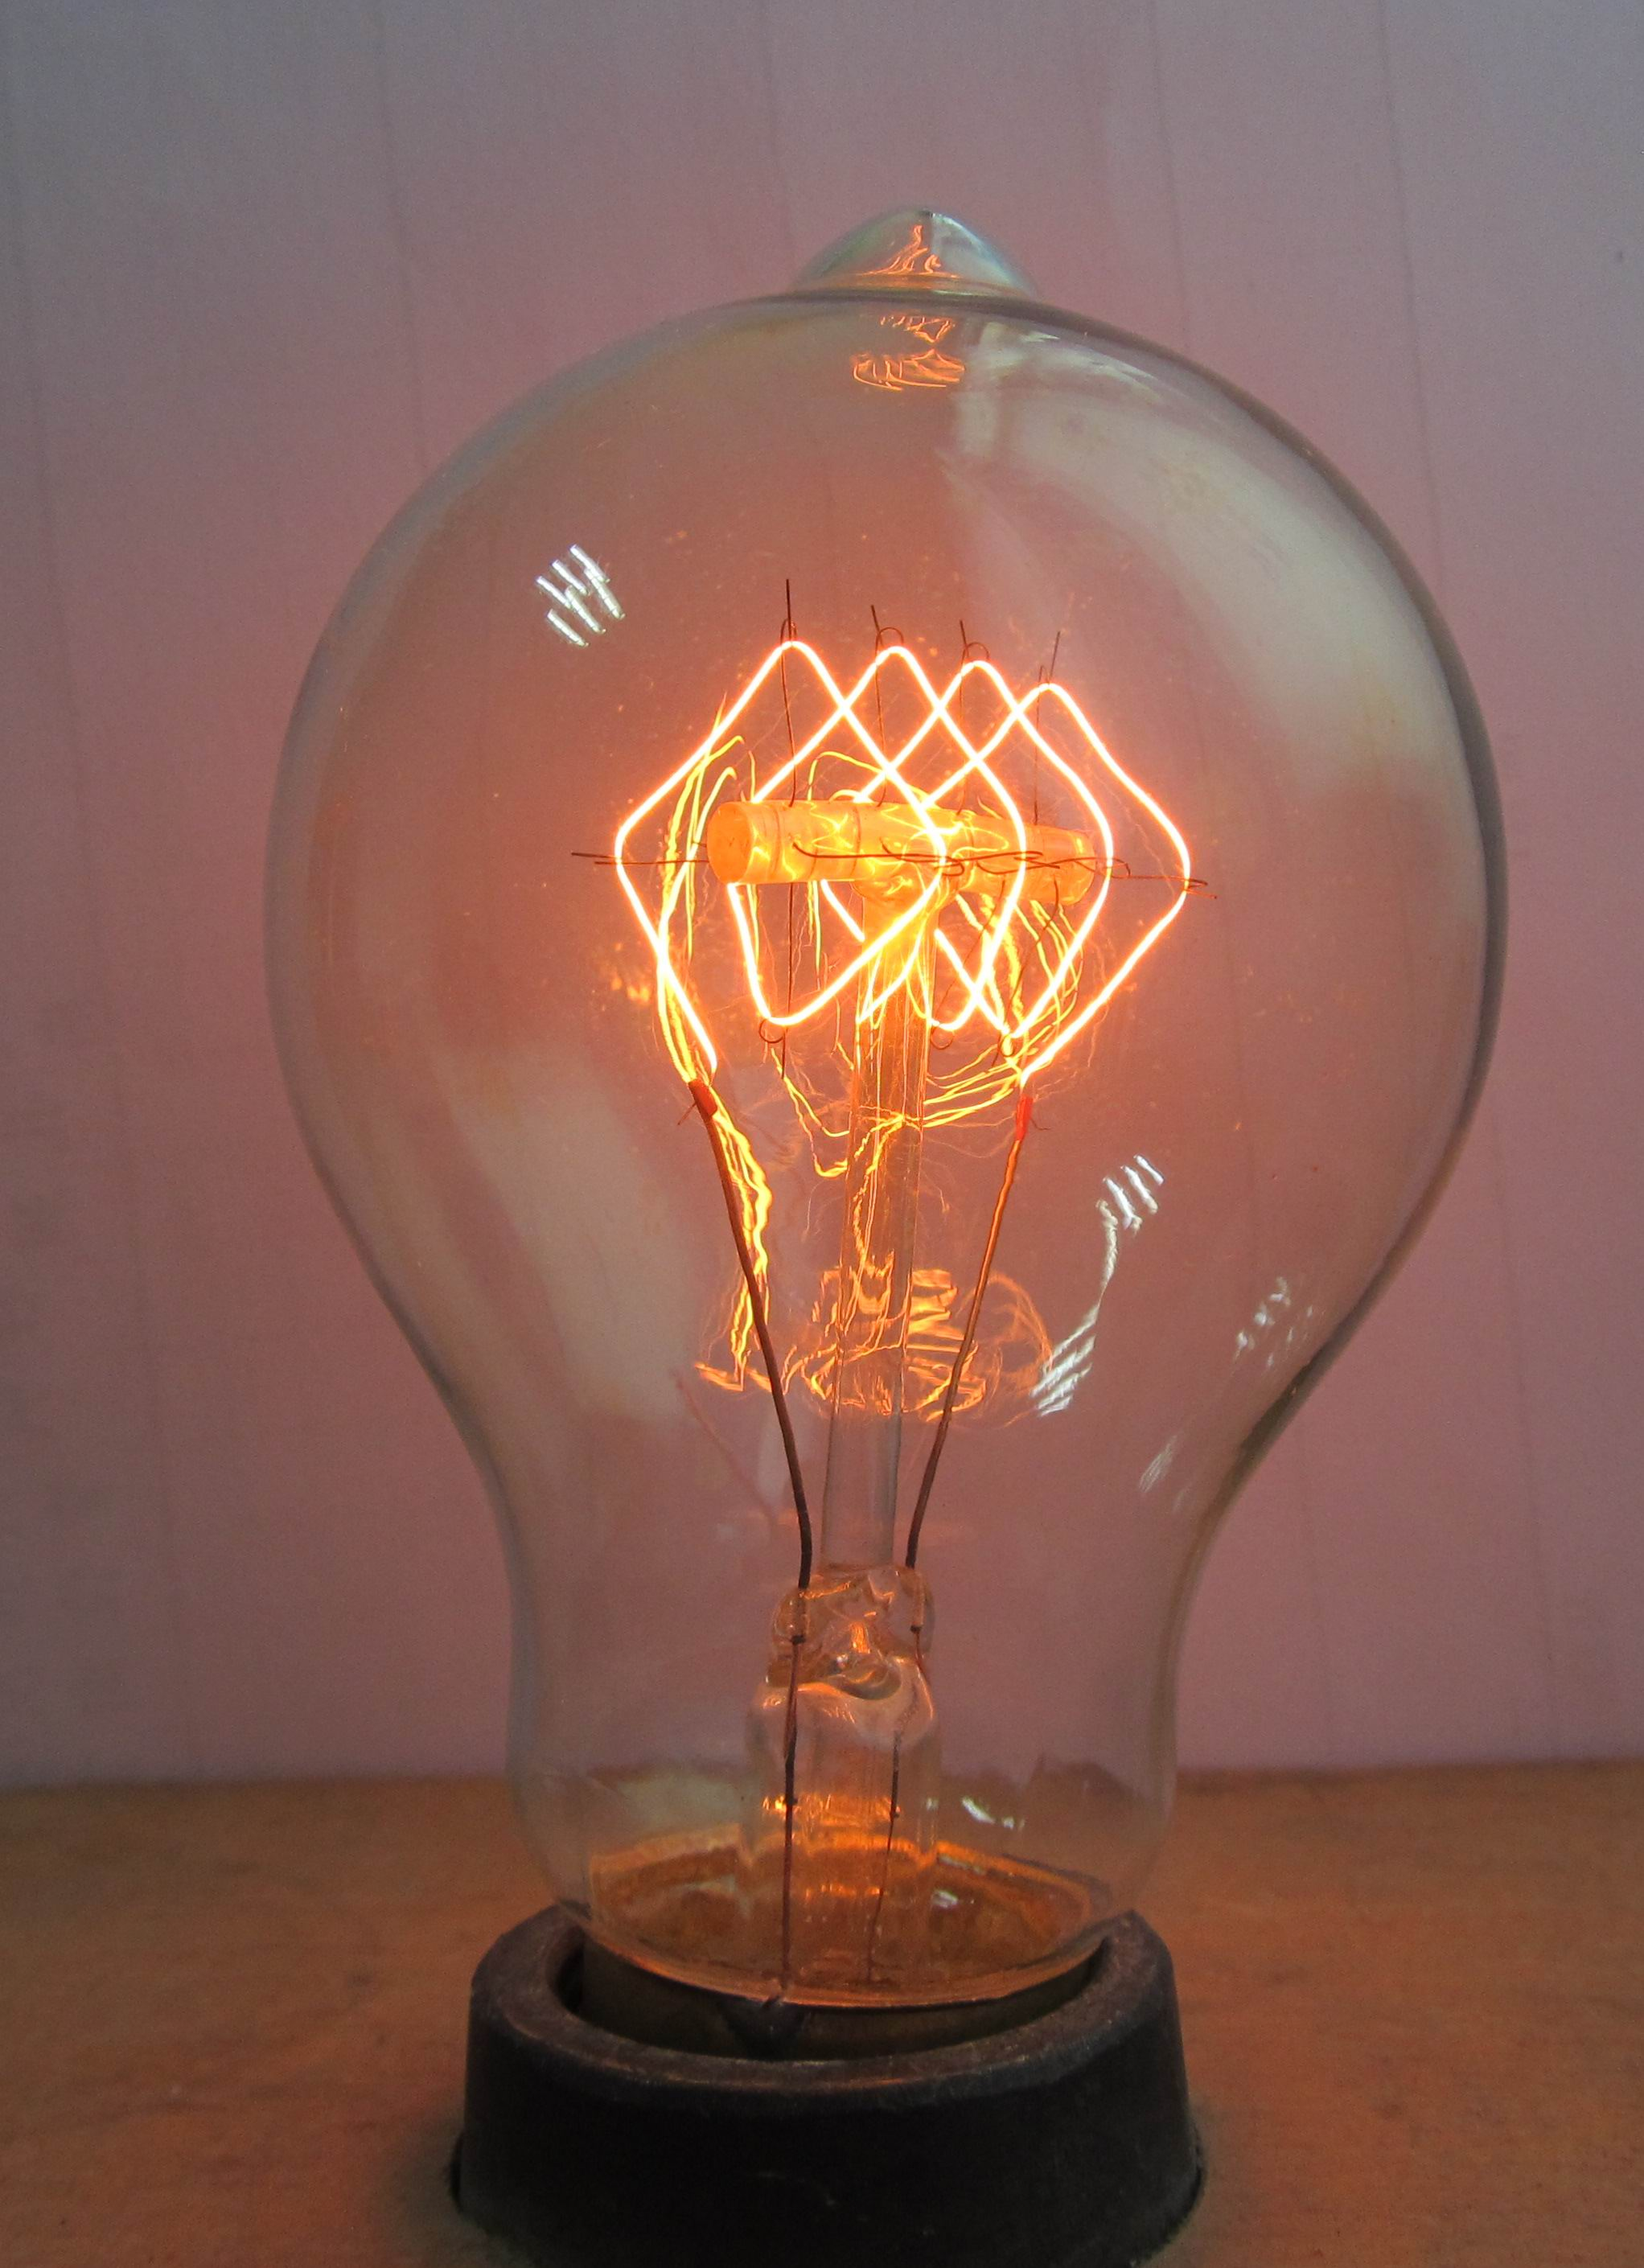 Hot Selling 5pcs/lot Quality Retro Silk Lighting Bulbs,Special Decorative  Fireworks Incandescent Bulbs Wholesale Free Shipping-in Incandescent Bulbs  from